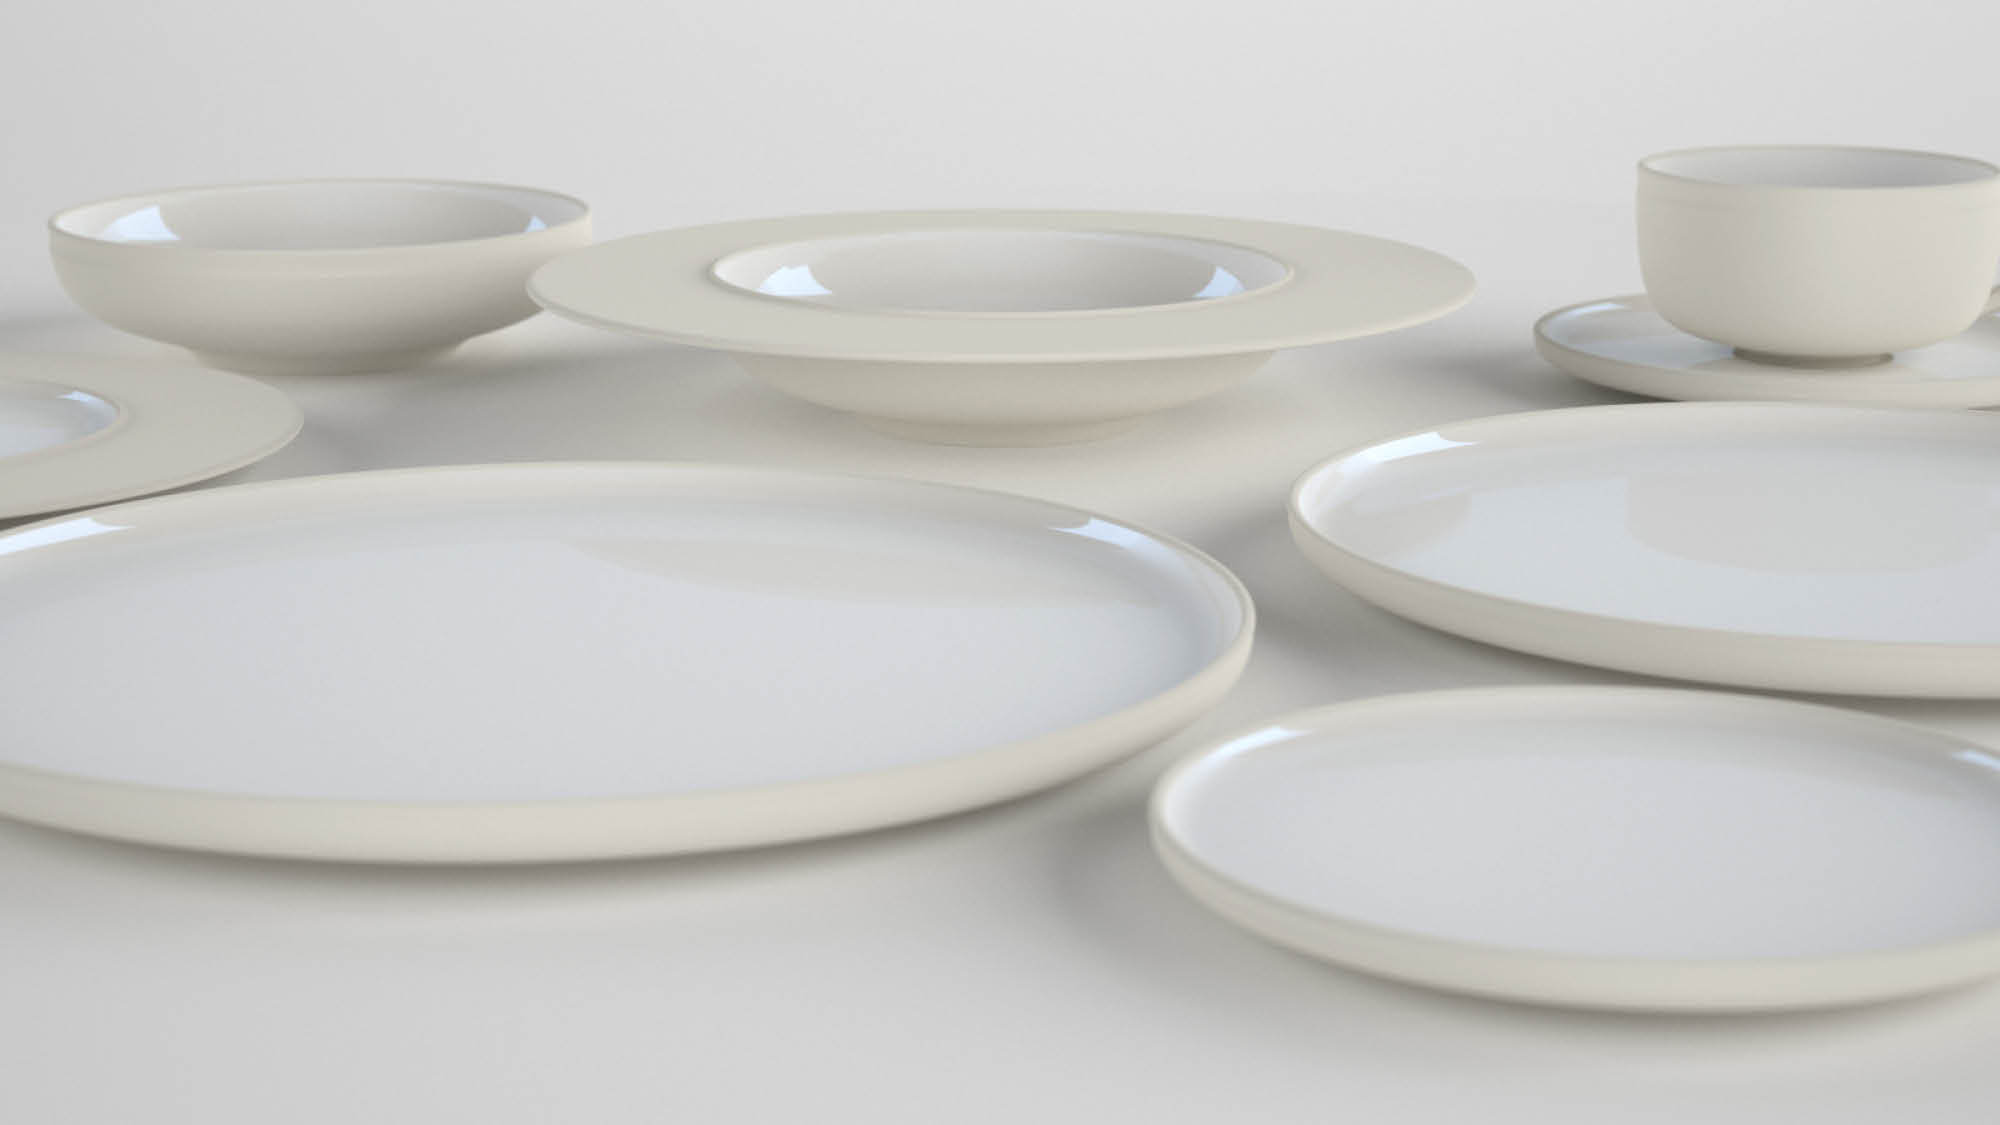 Exploration 3 ? Work 1/5 & Eleven Madison Park: Dinnerware | Allied Works